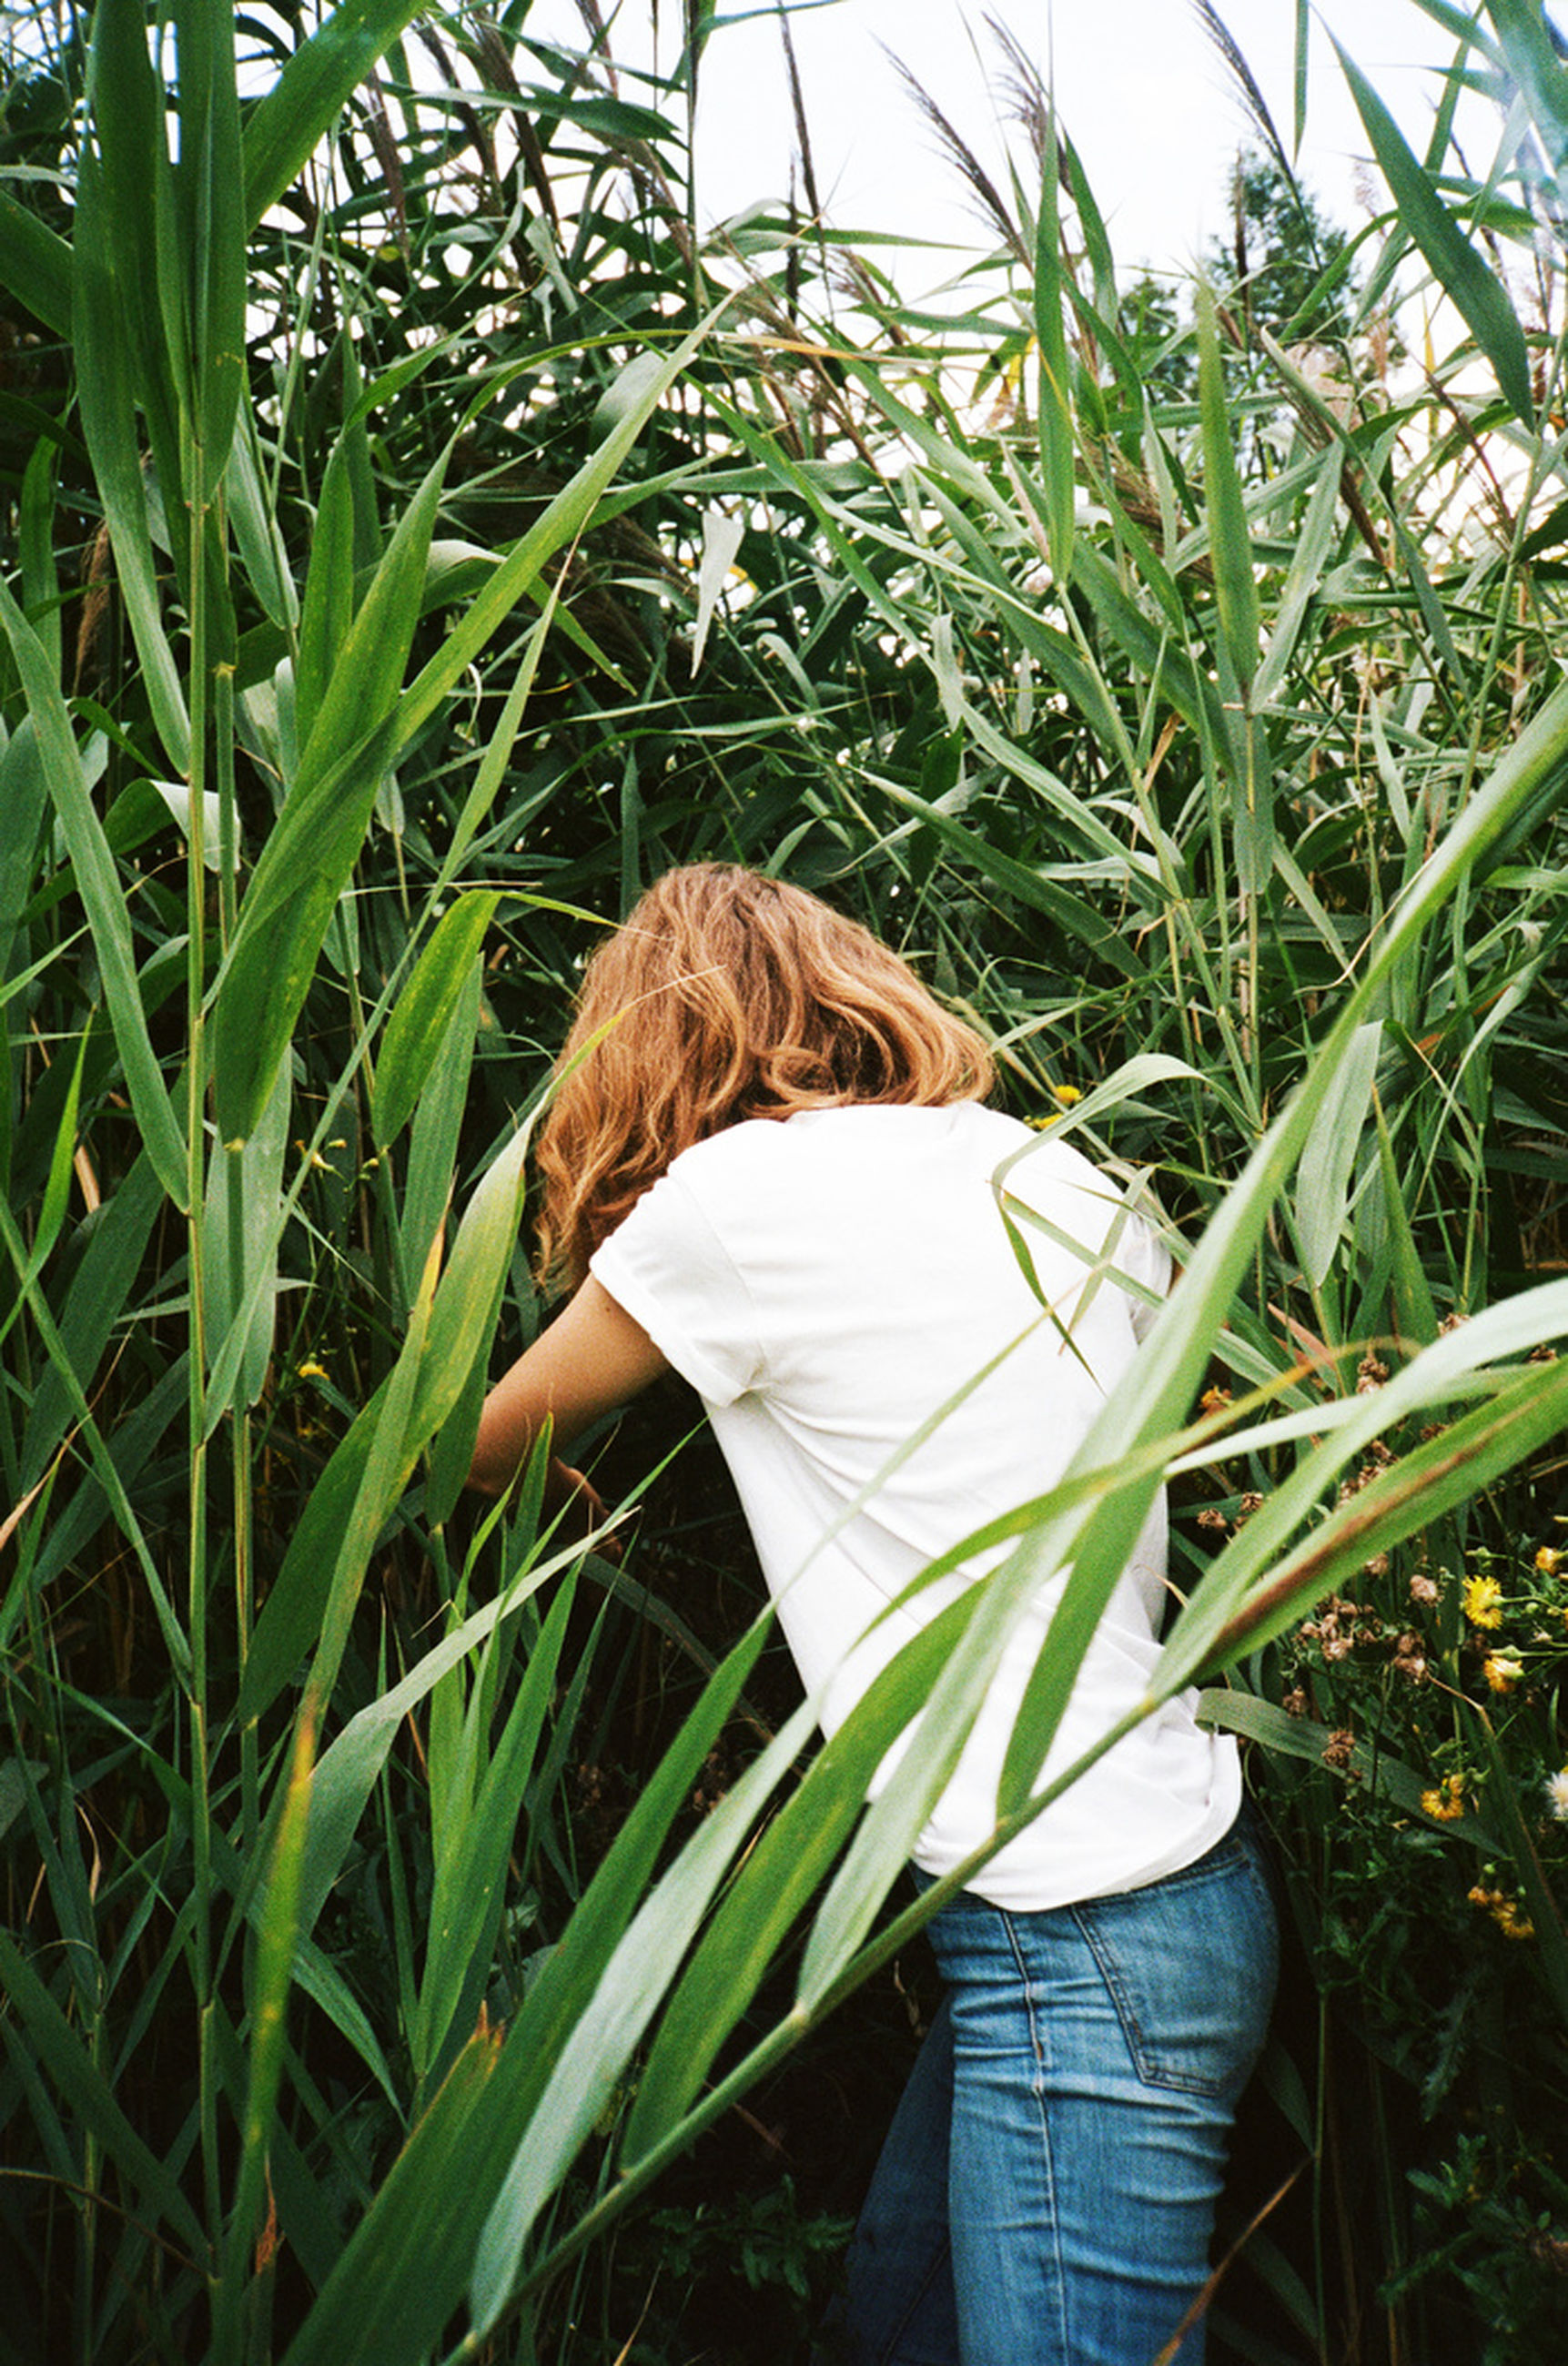 one person, growth, plant, real people, leisure activity, field, land, women, three quarter length, nature, lifestyles, standing, rear view, day, adult, green color, hair, young adult, casual clothing, hairstyle, outdoors, obscured face